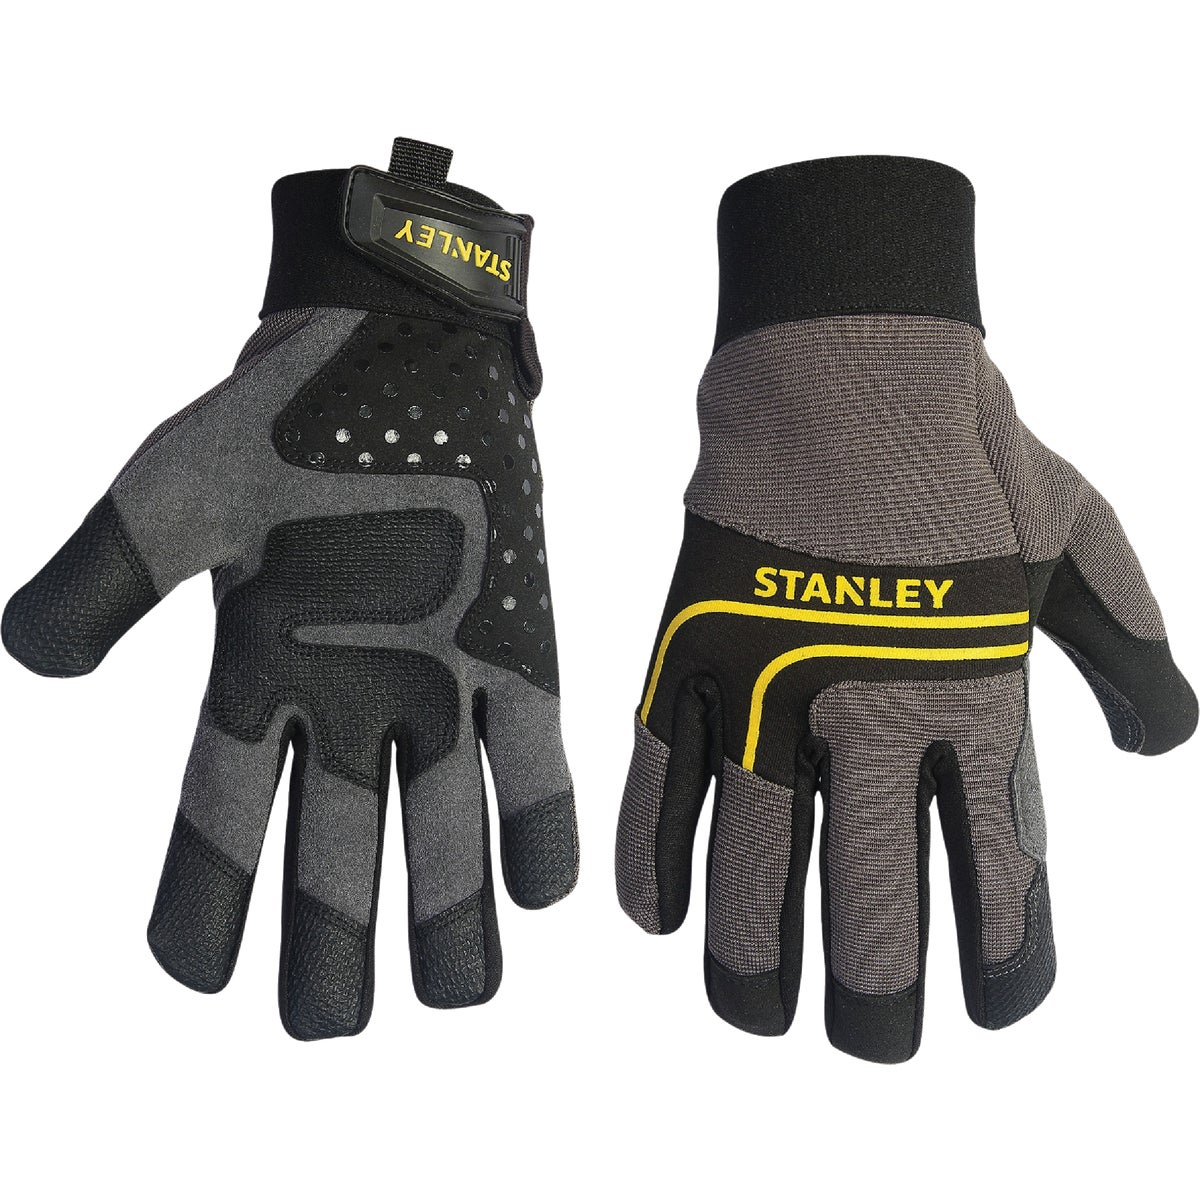 XL WORK CREW GLOVE - WCG-05-XL by Ironclad Performance